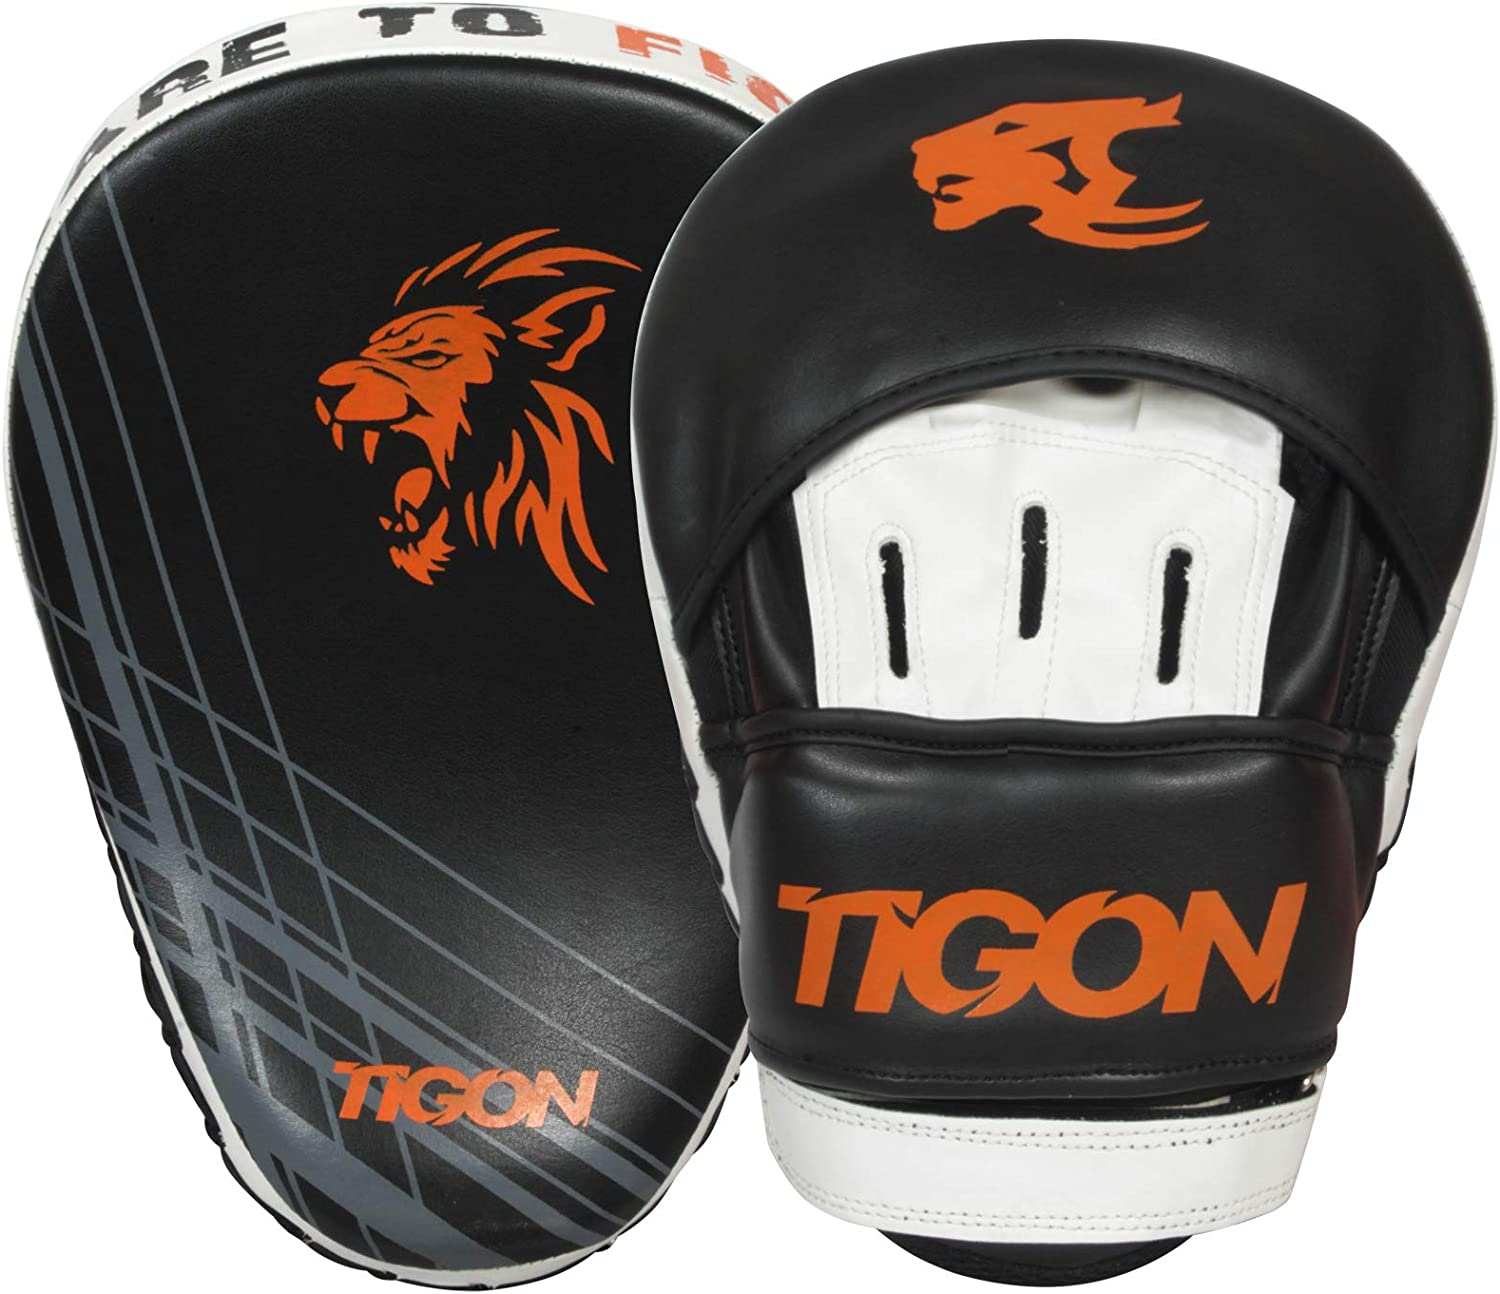 Tigon Sports Curved Focus Pads Mitts Hook and Jab Punch Bag Kick Boxing Muay Thai Arm MMA UFC